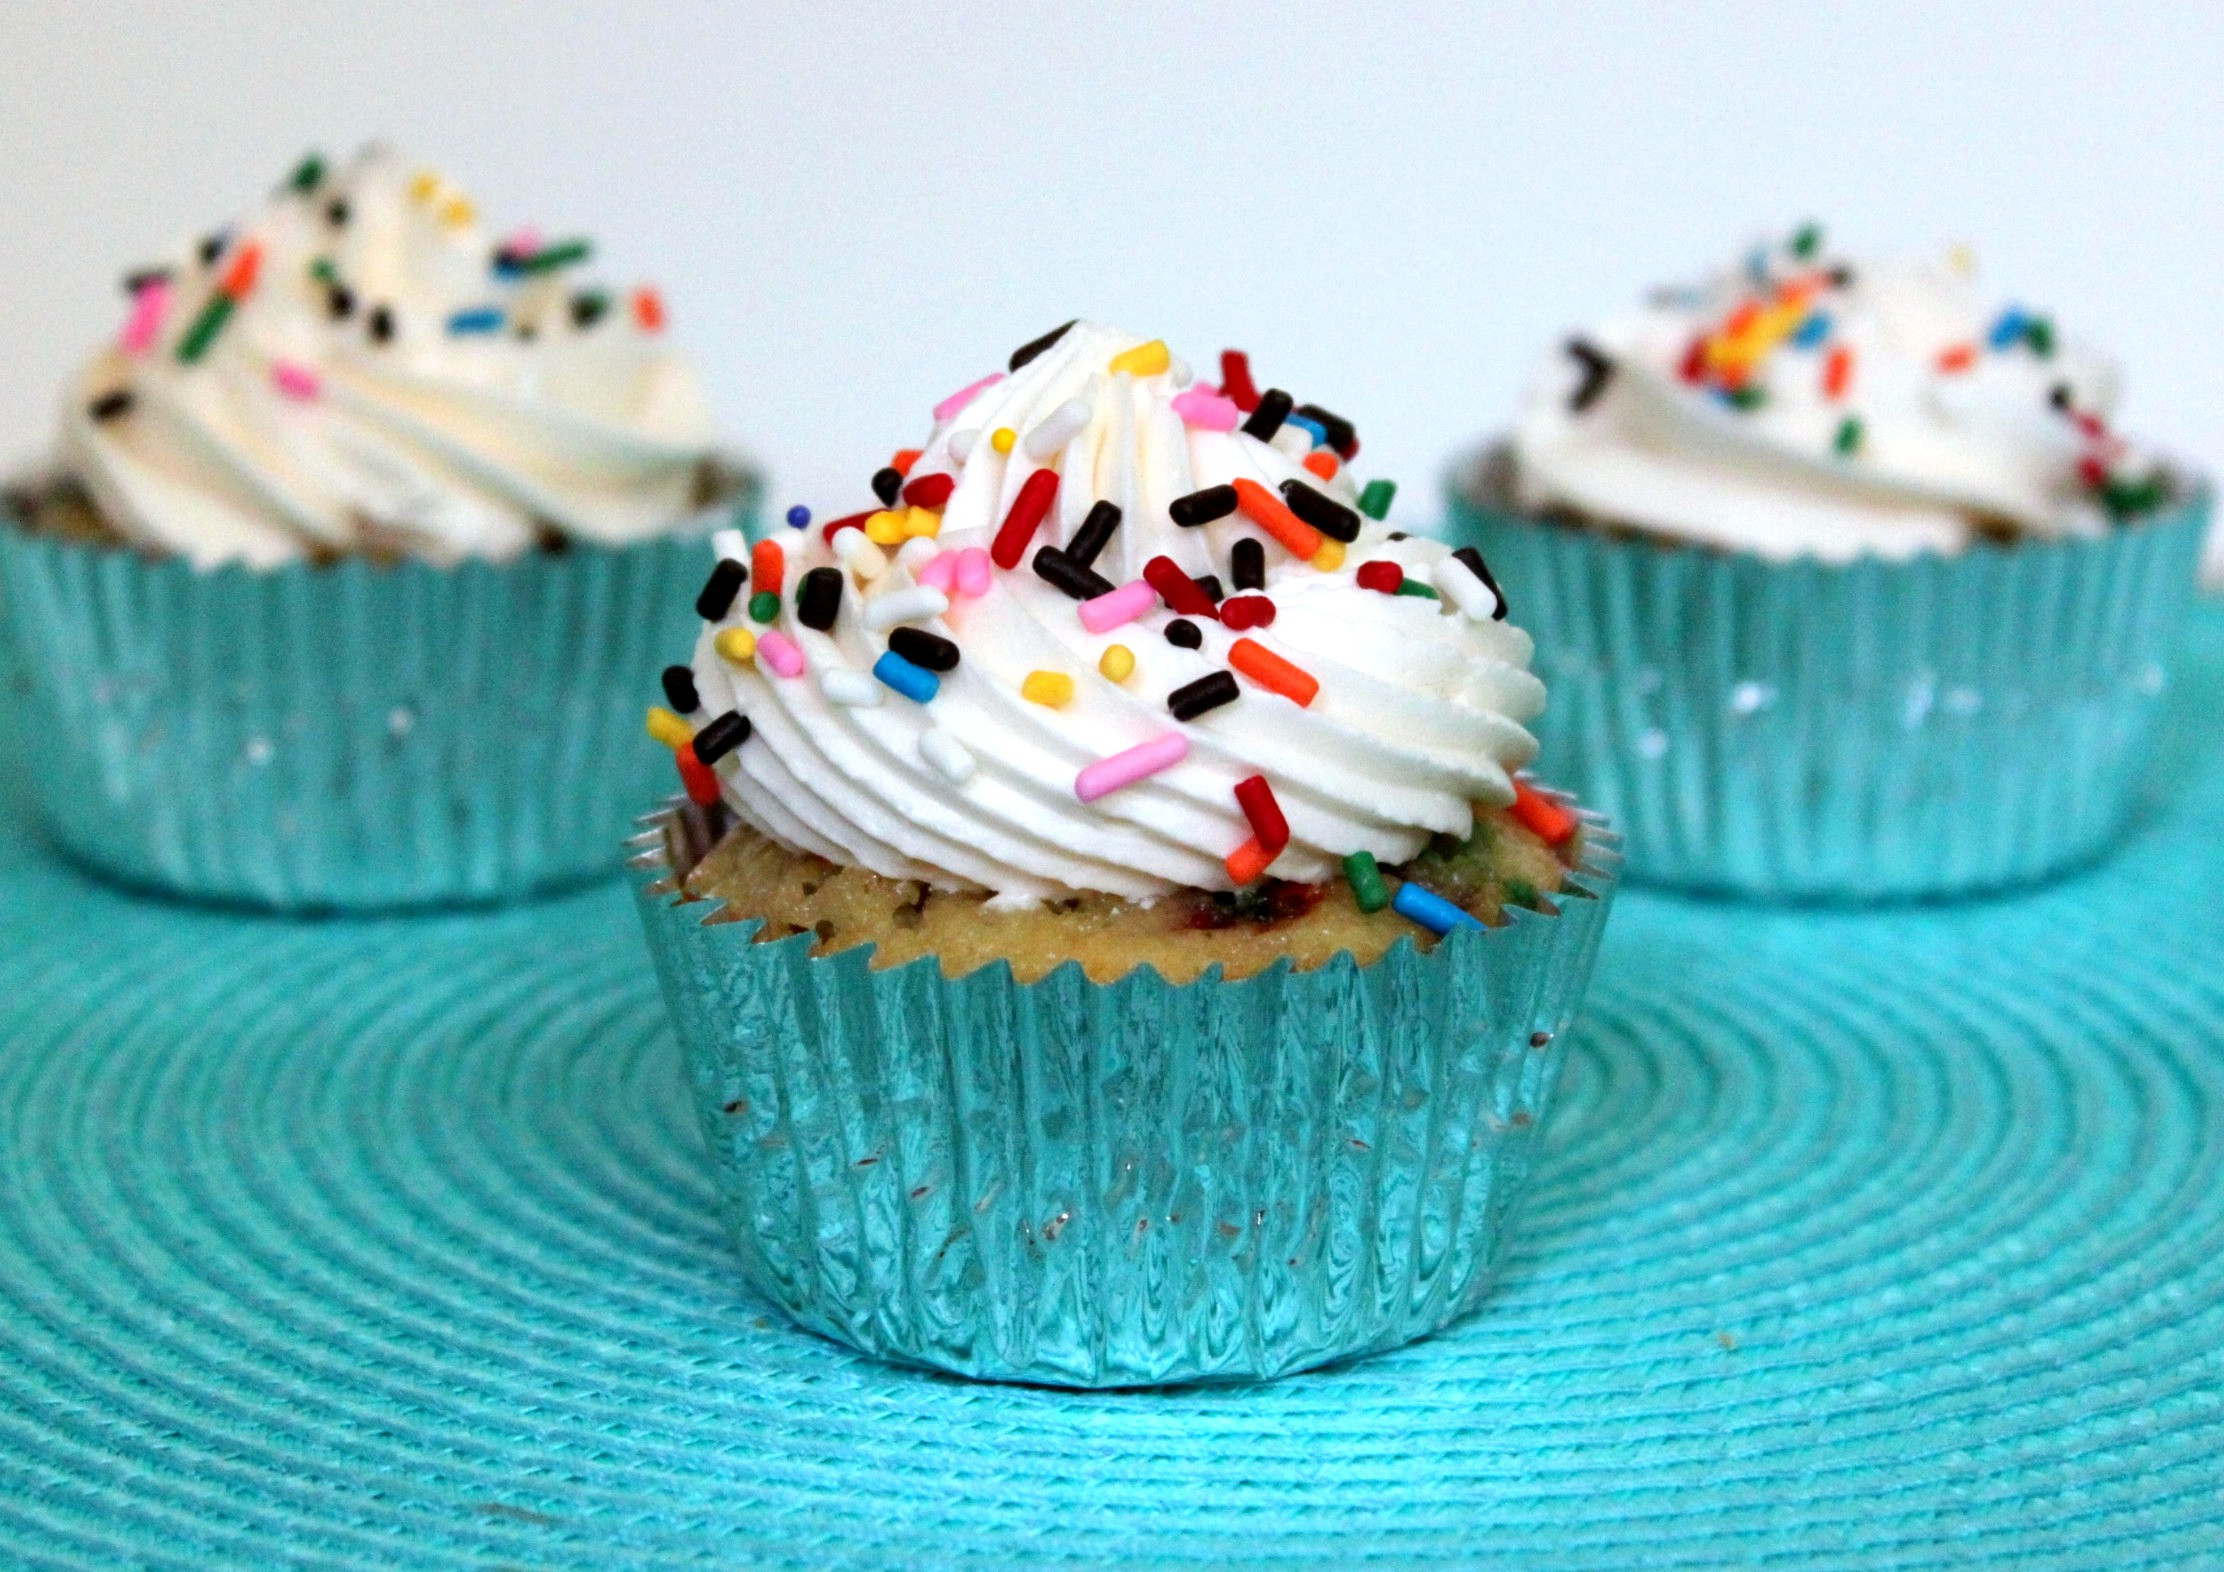 How To Make Homemade Cupcakes  Homemade Funftetti Cupcakes & a Giveaway